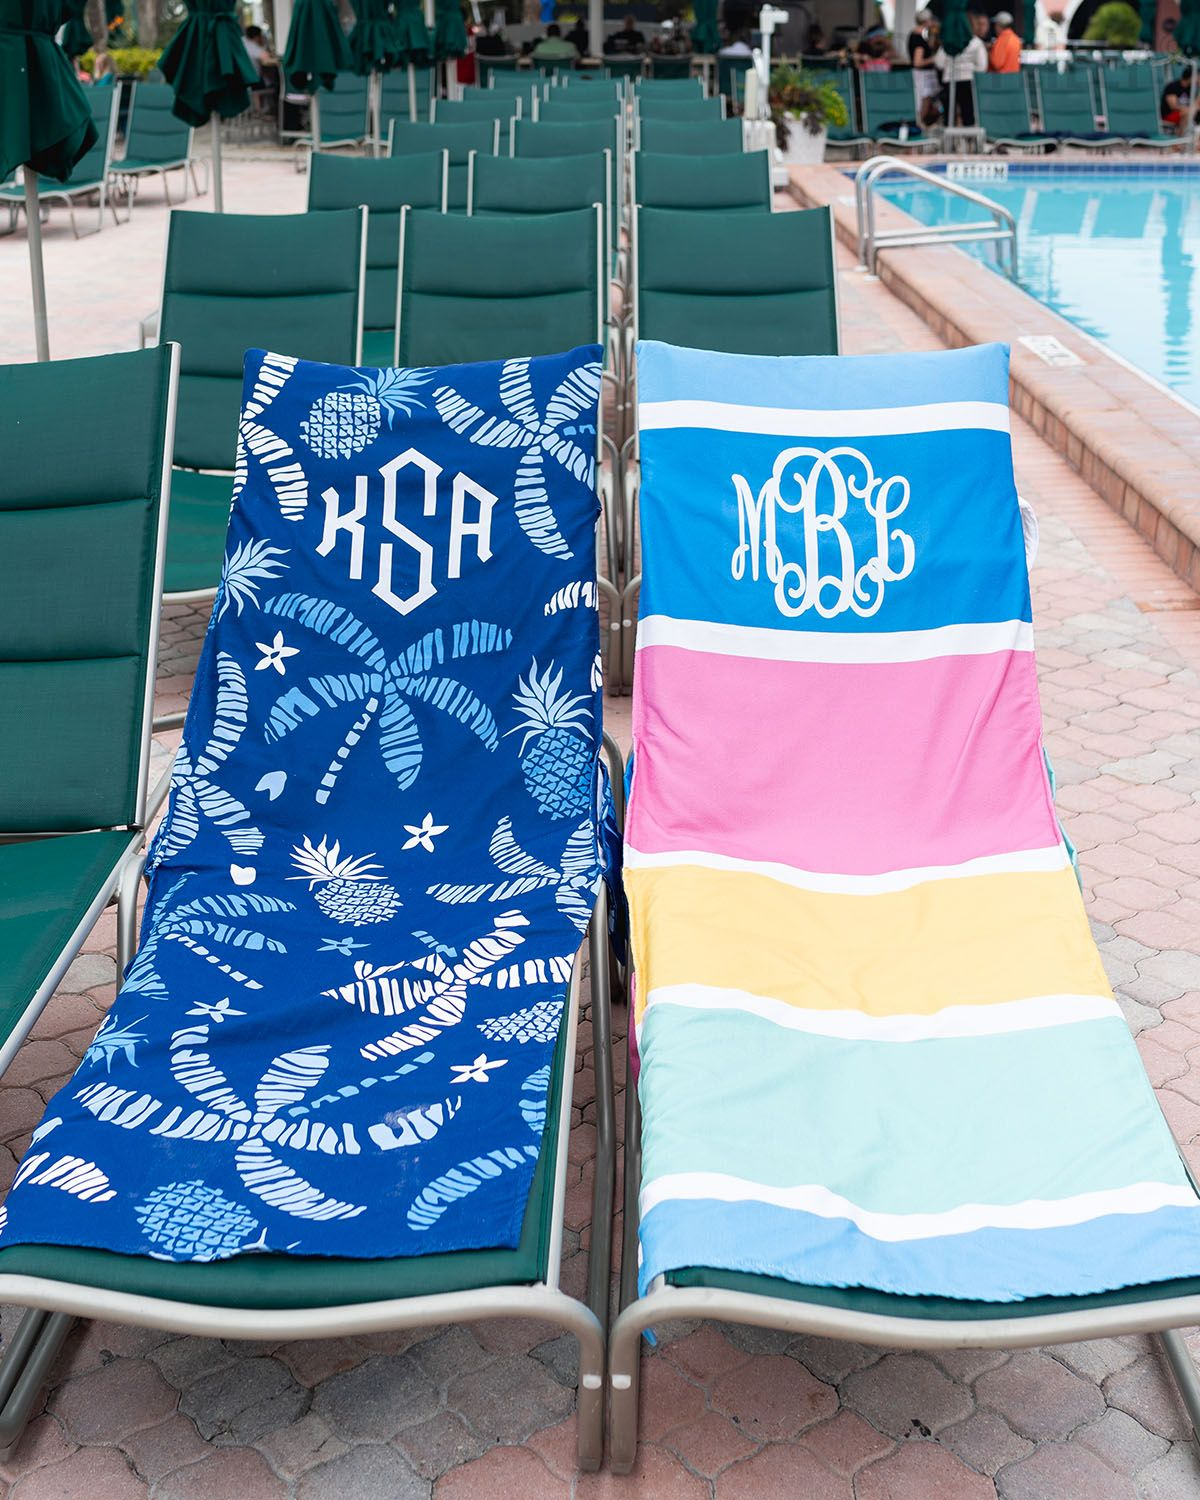 06f49a729cc8 Claim your spot in the sun with this NEW cute Monogrammed Chair cover! With  2 styles to choose from, and pockets on the side - it'll never leave your  pool ...